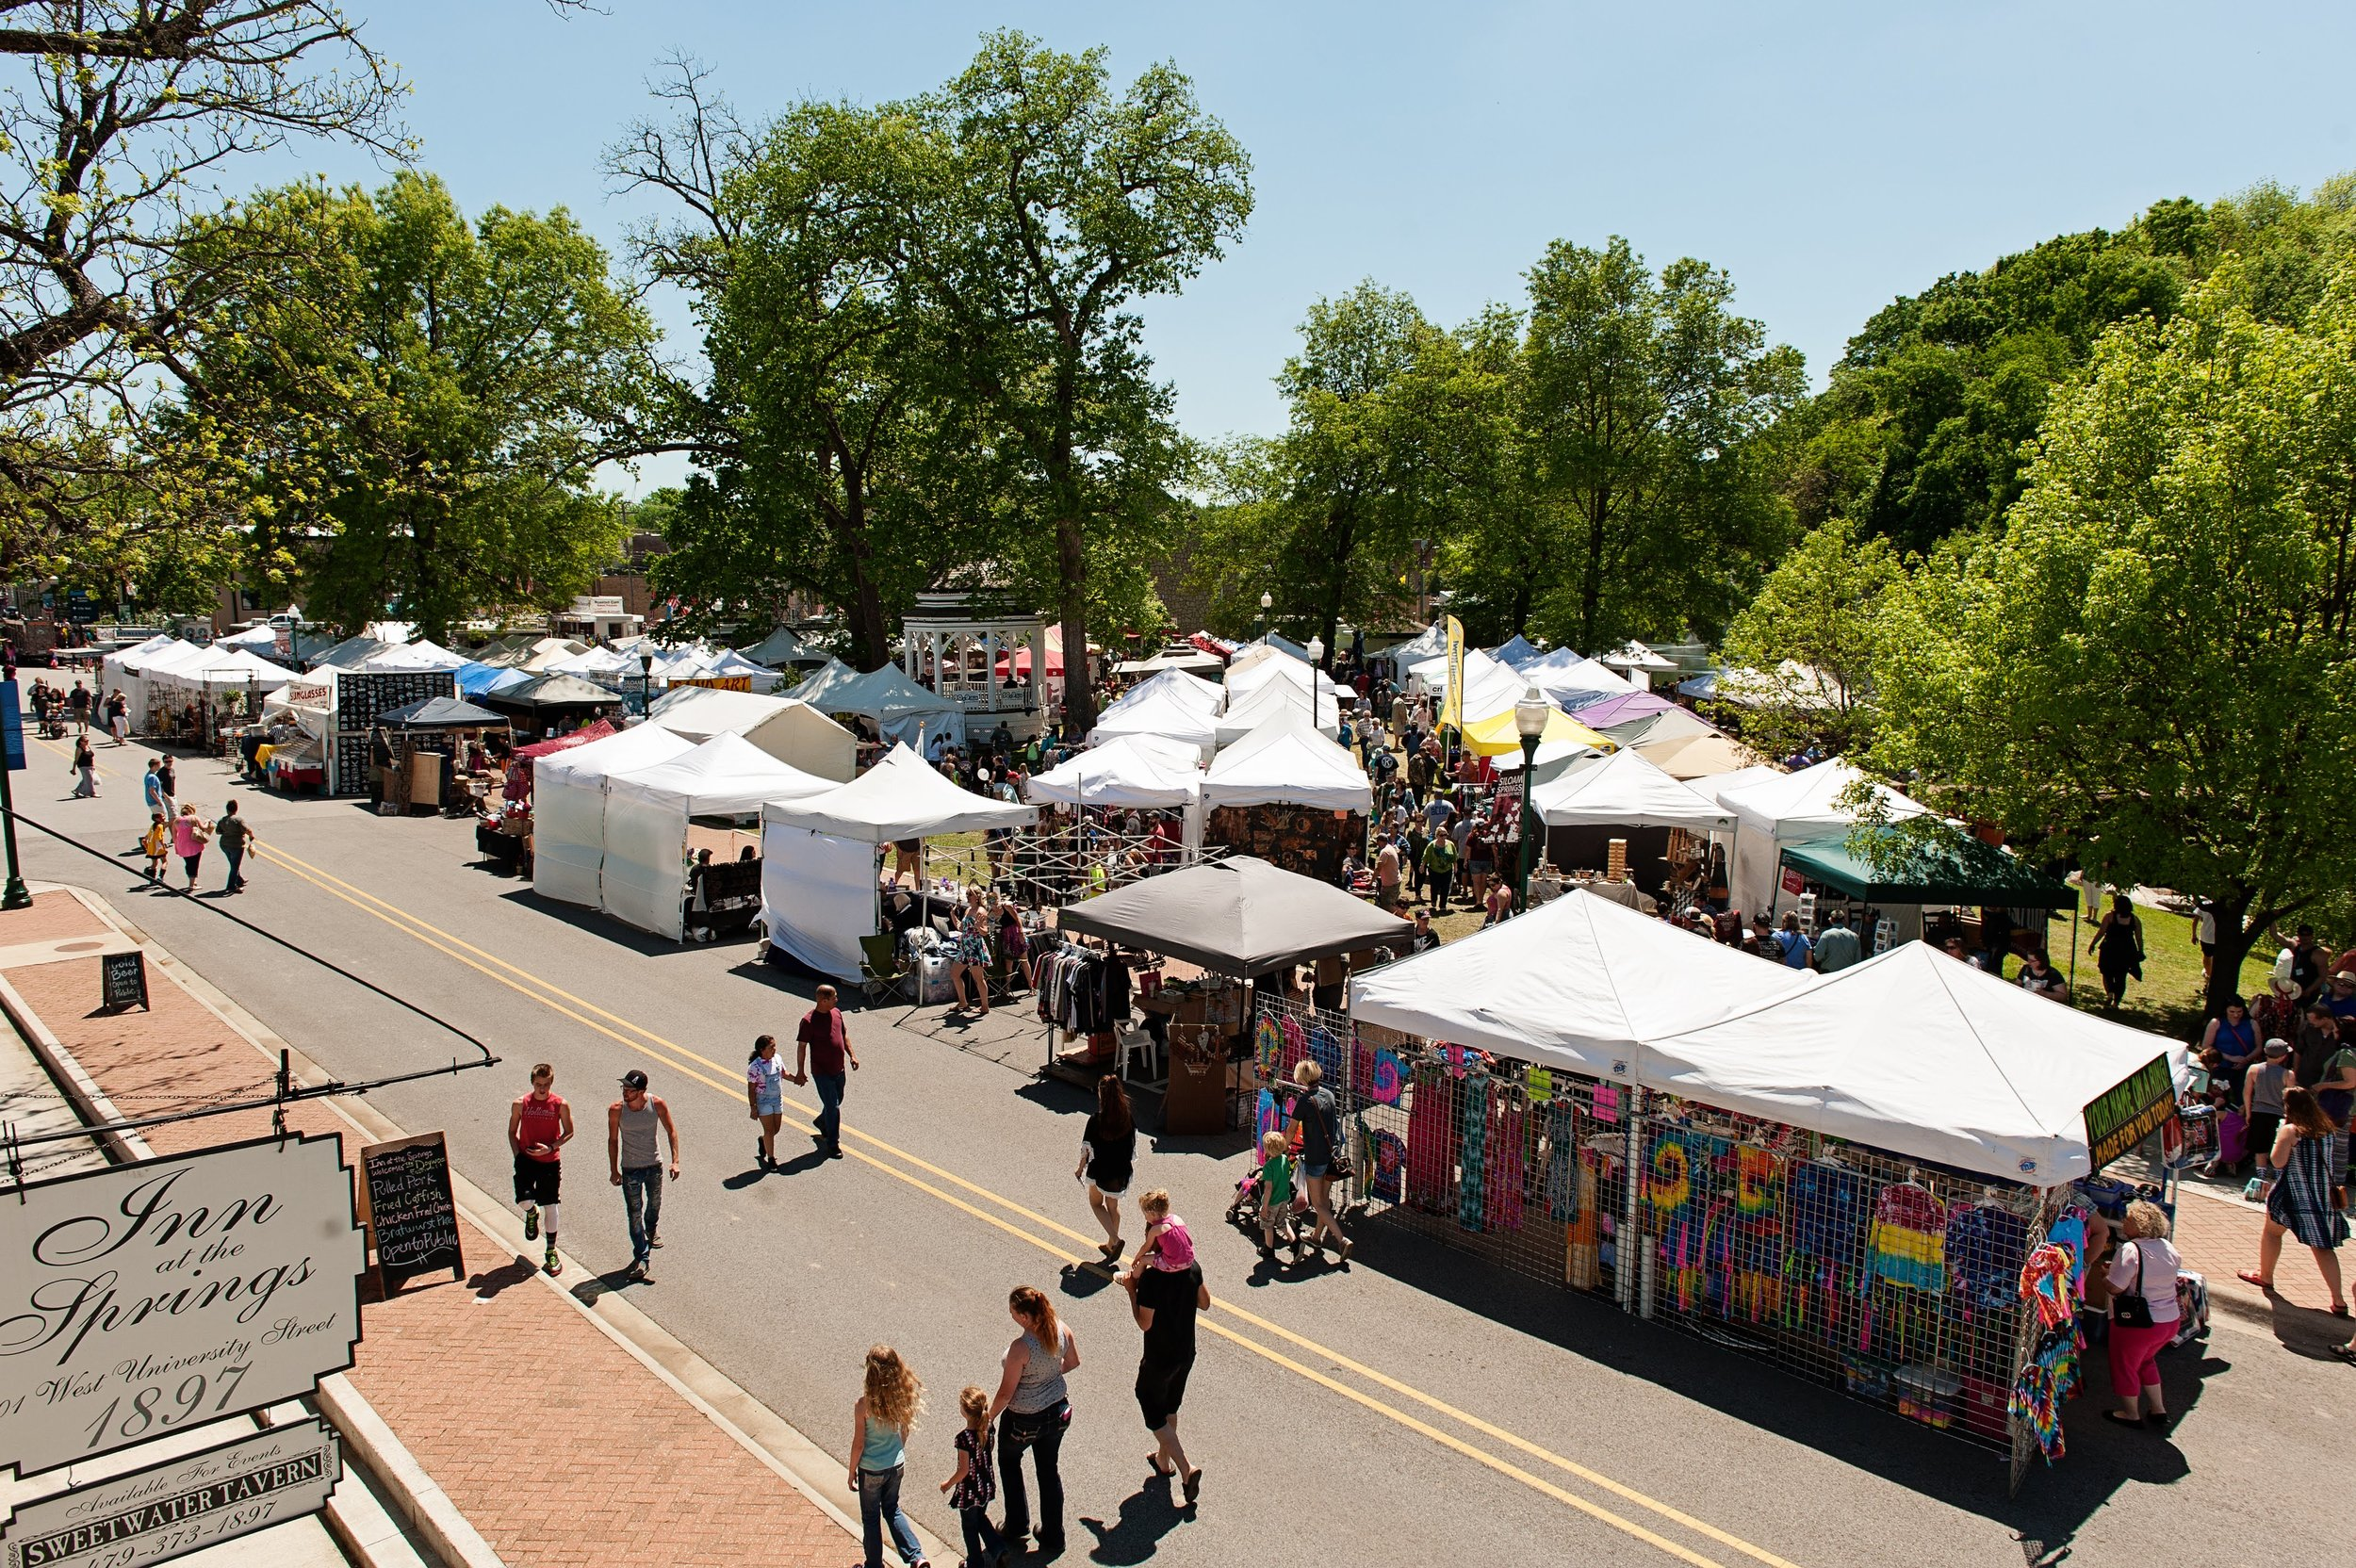 Today, the Dogwood Festival receives more than 30,000 visitors. Photo: Siloam Springs Chamber of Commerce